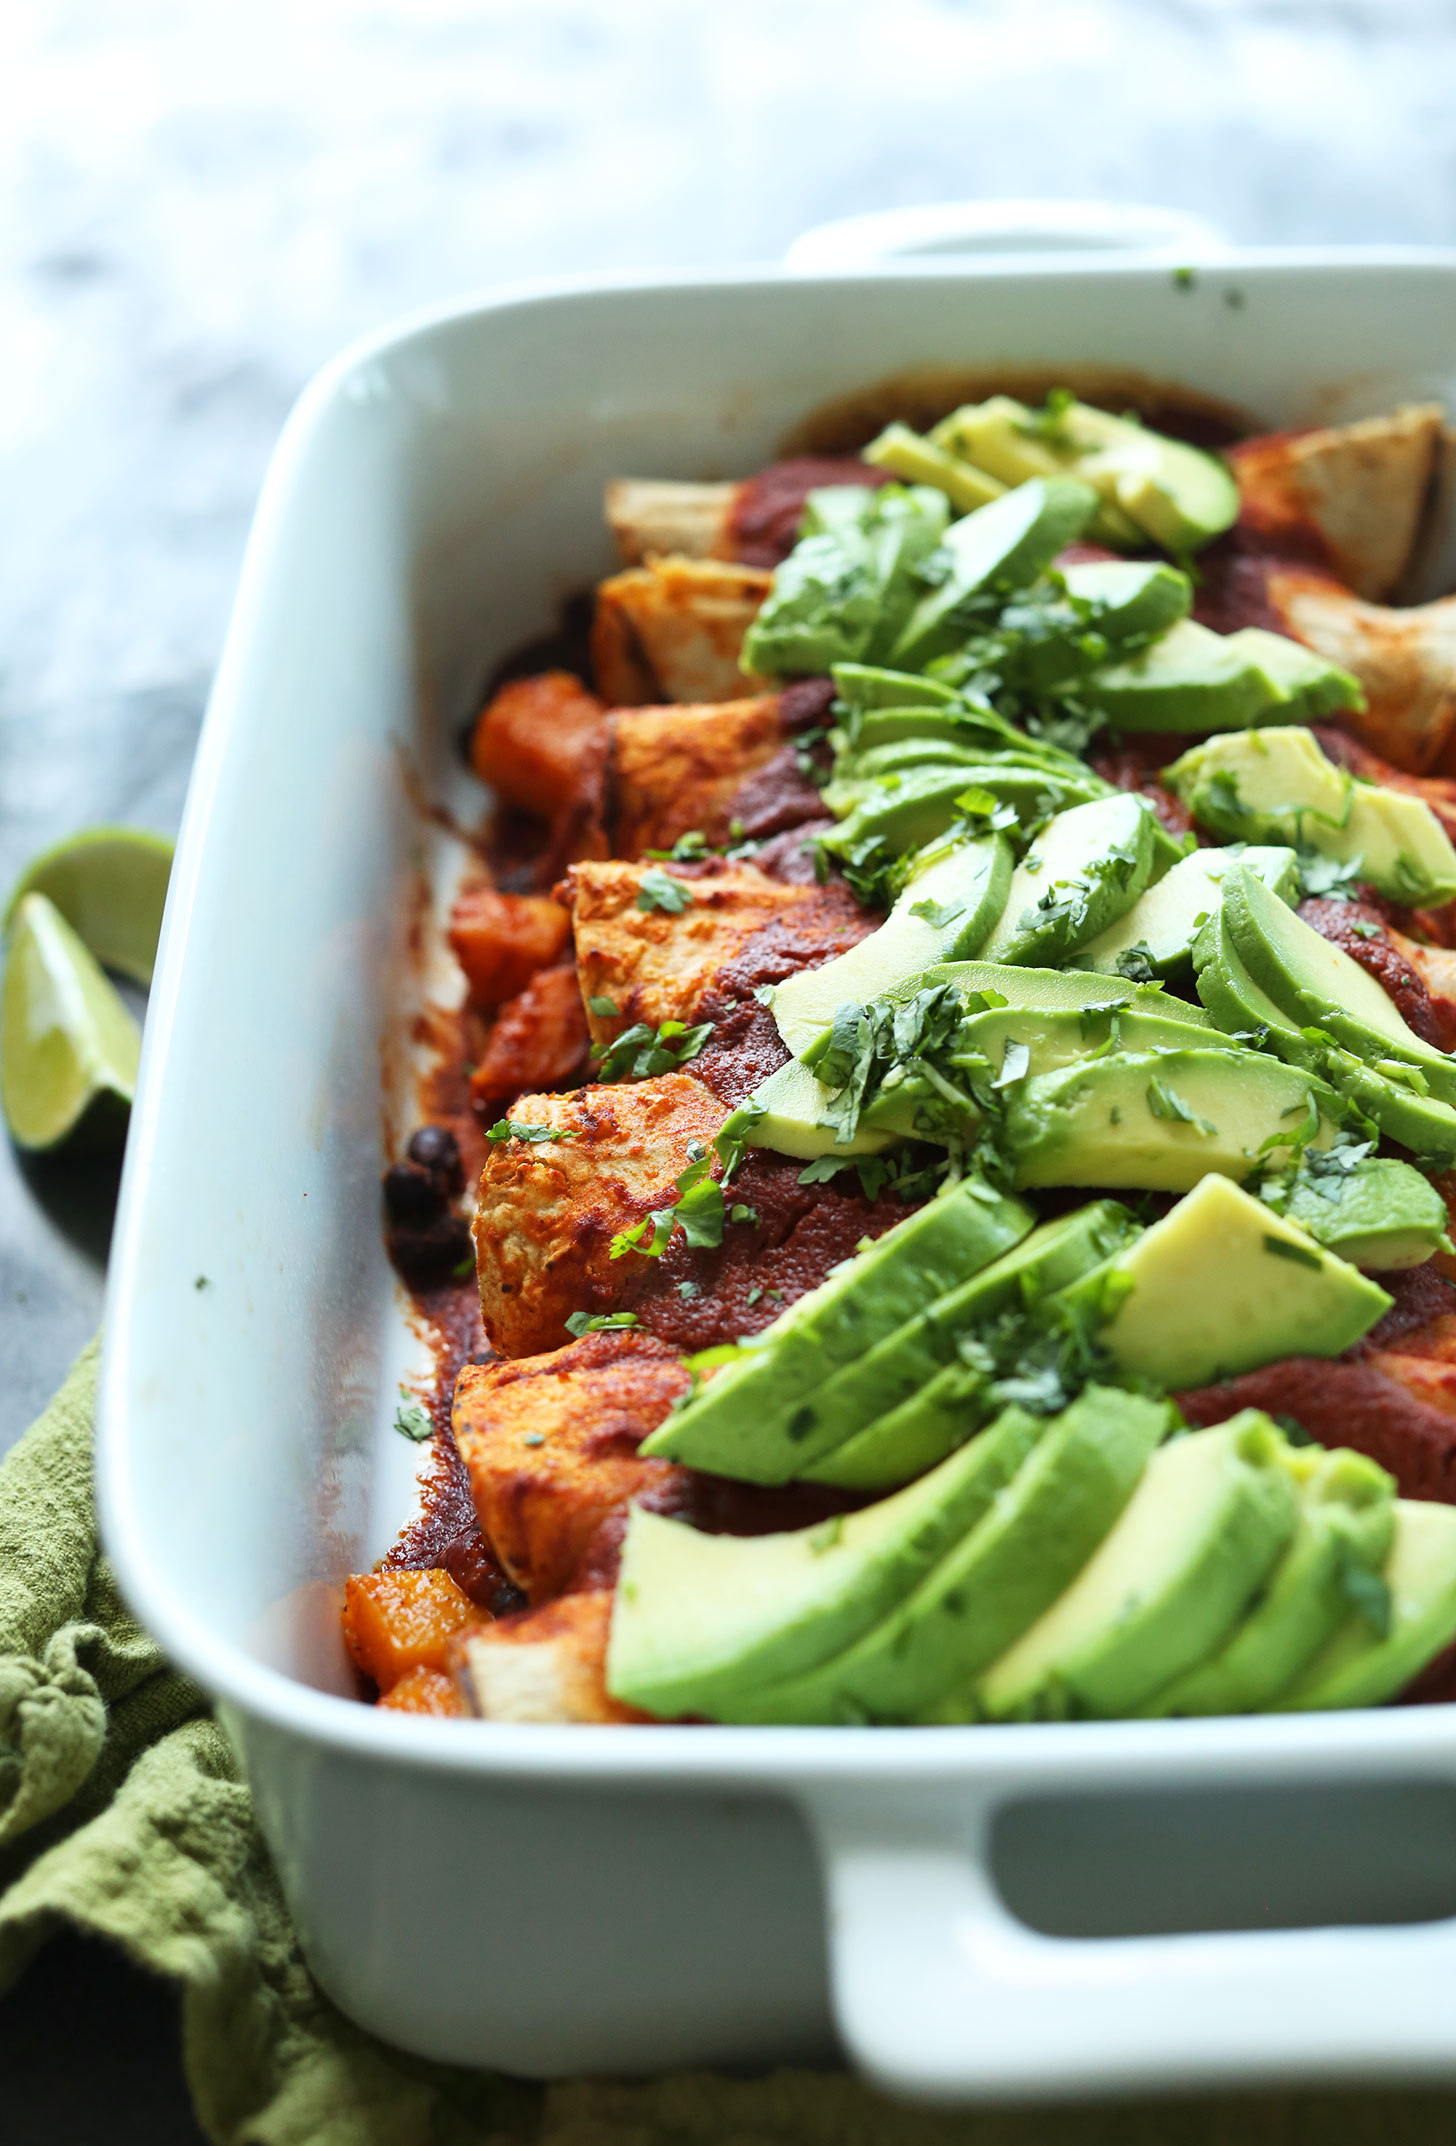 Pan of Butternut Squash Enchiladas for a healthy gluten-free vegan dinner for the whole family